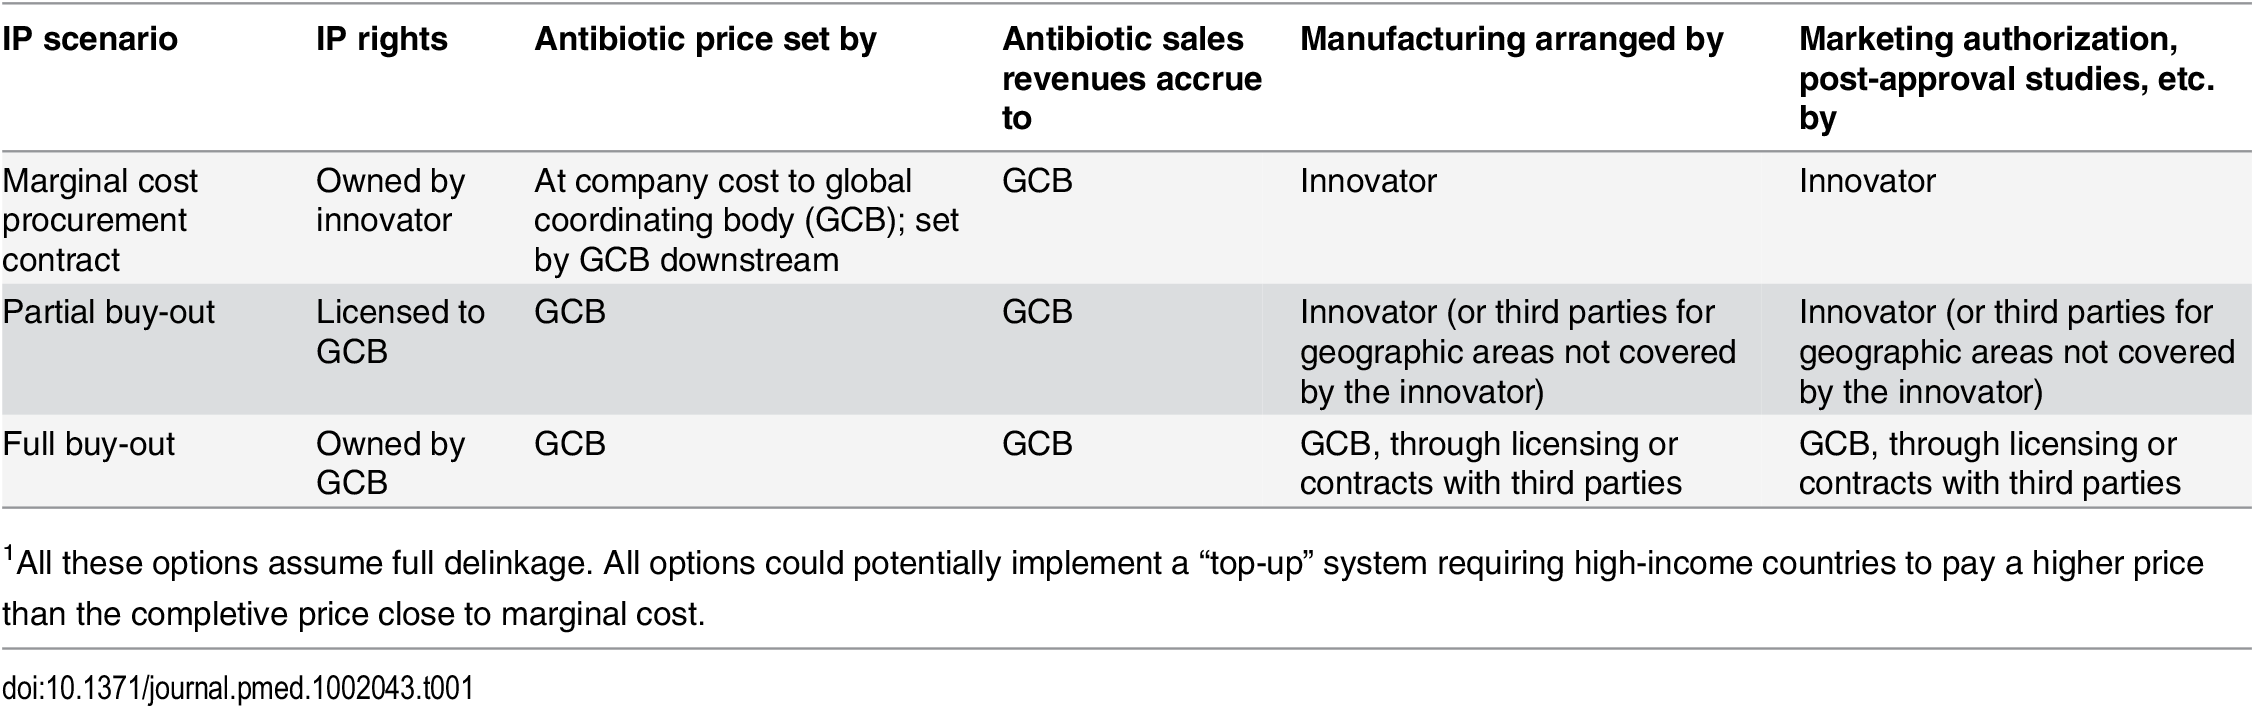 Rights and responsibilities for the patent holder and a global coordinating body (GCB) in three IP holding scenarios<em class=&quot;ref&quot;><sup>1</sup></em>.